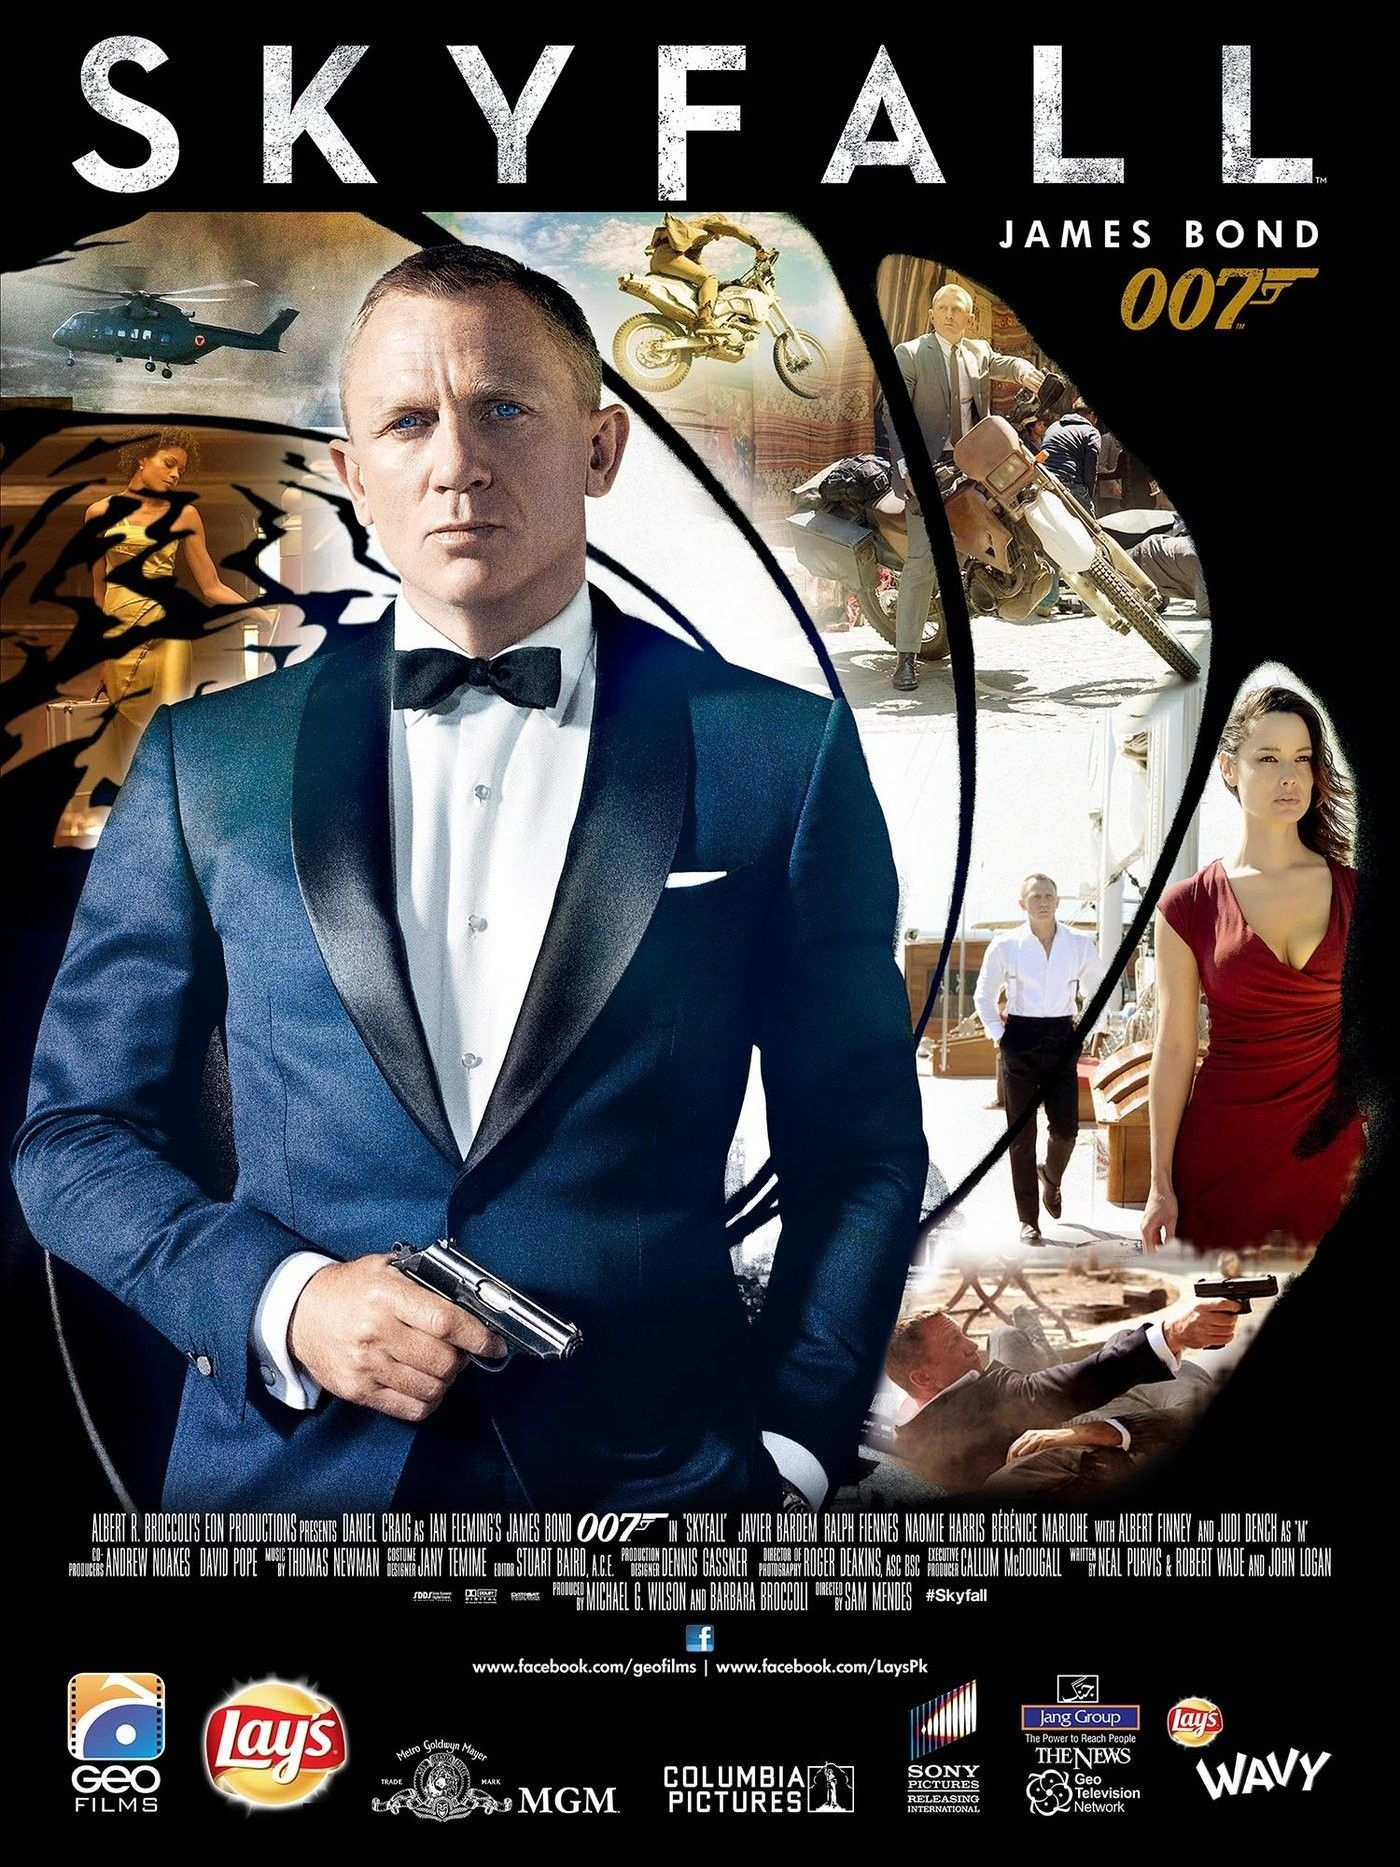 Pin By J Cds On Movie Posters James Bond Movie Posters Bond Movies James Bond Movies